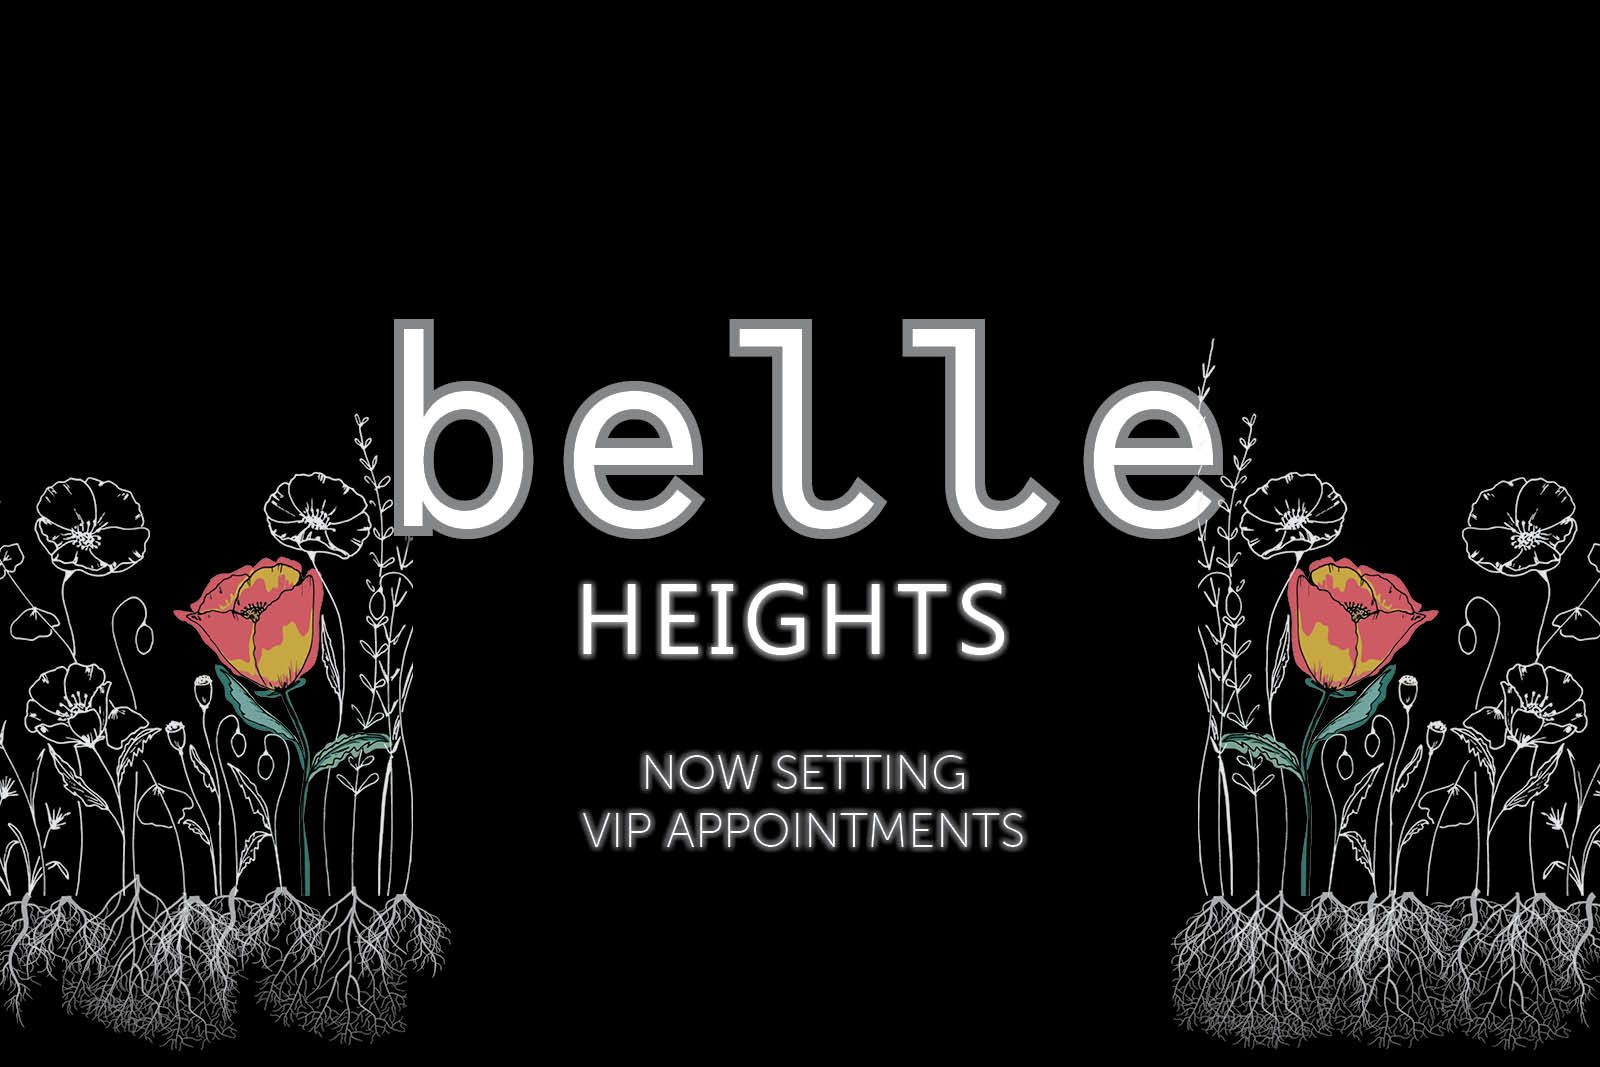 NOW SETTING VIP APPOINTMENTS! JOIN THE VIP LIST!:We're officially setting VIP Appointments for Belle Heights!Join the VIP List for access to pricing, VIP rewards & to set your appointment to buy first!